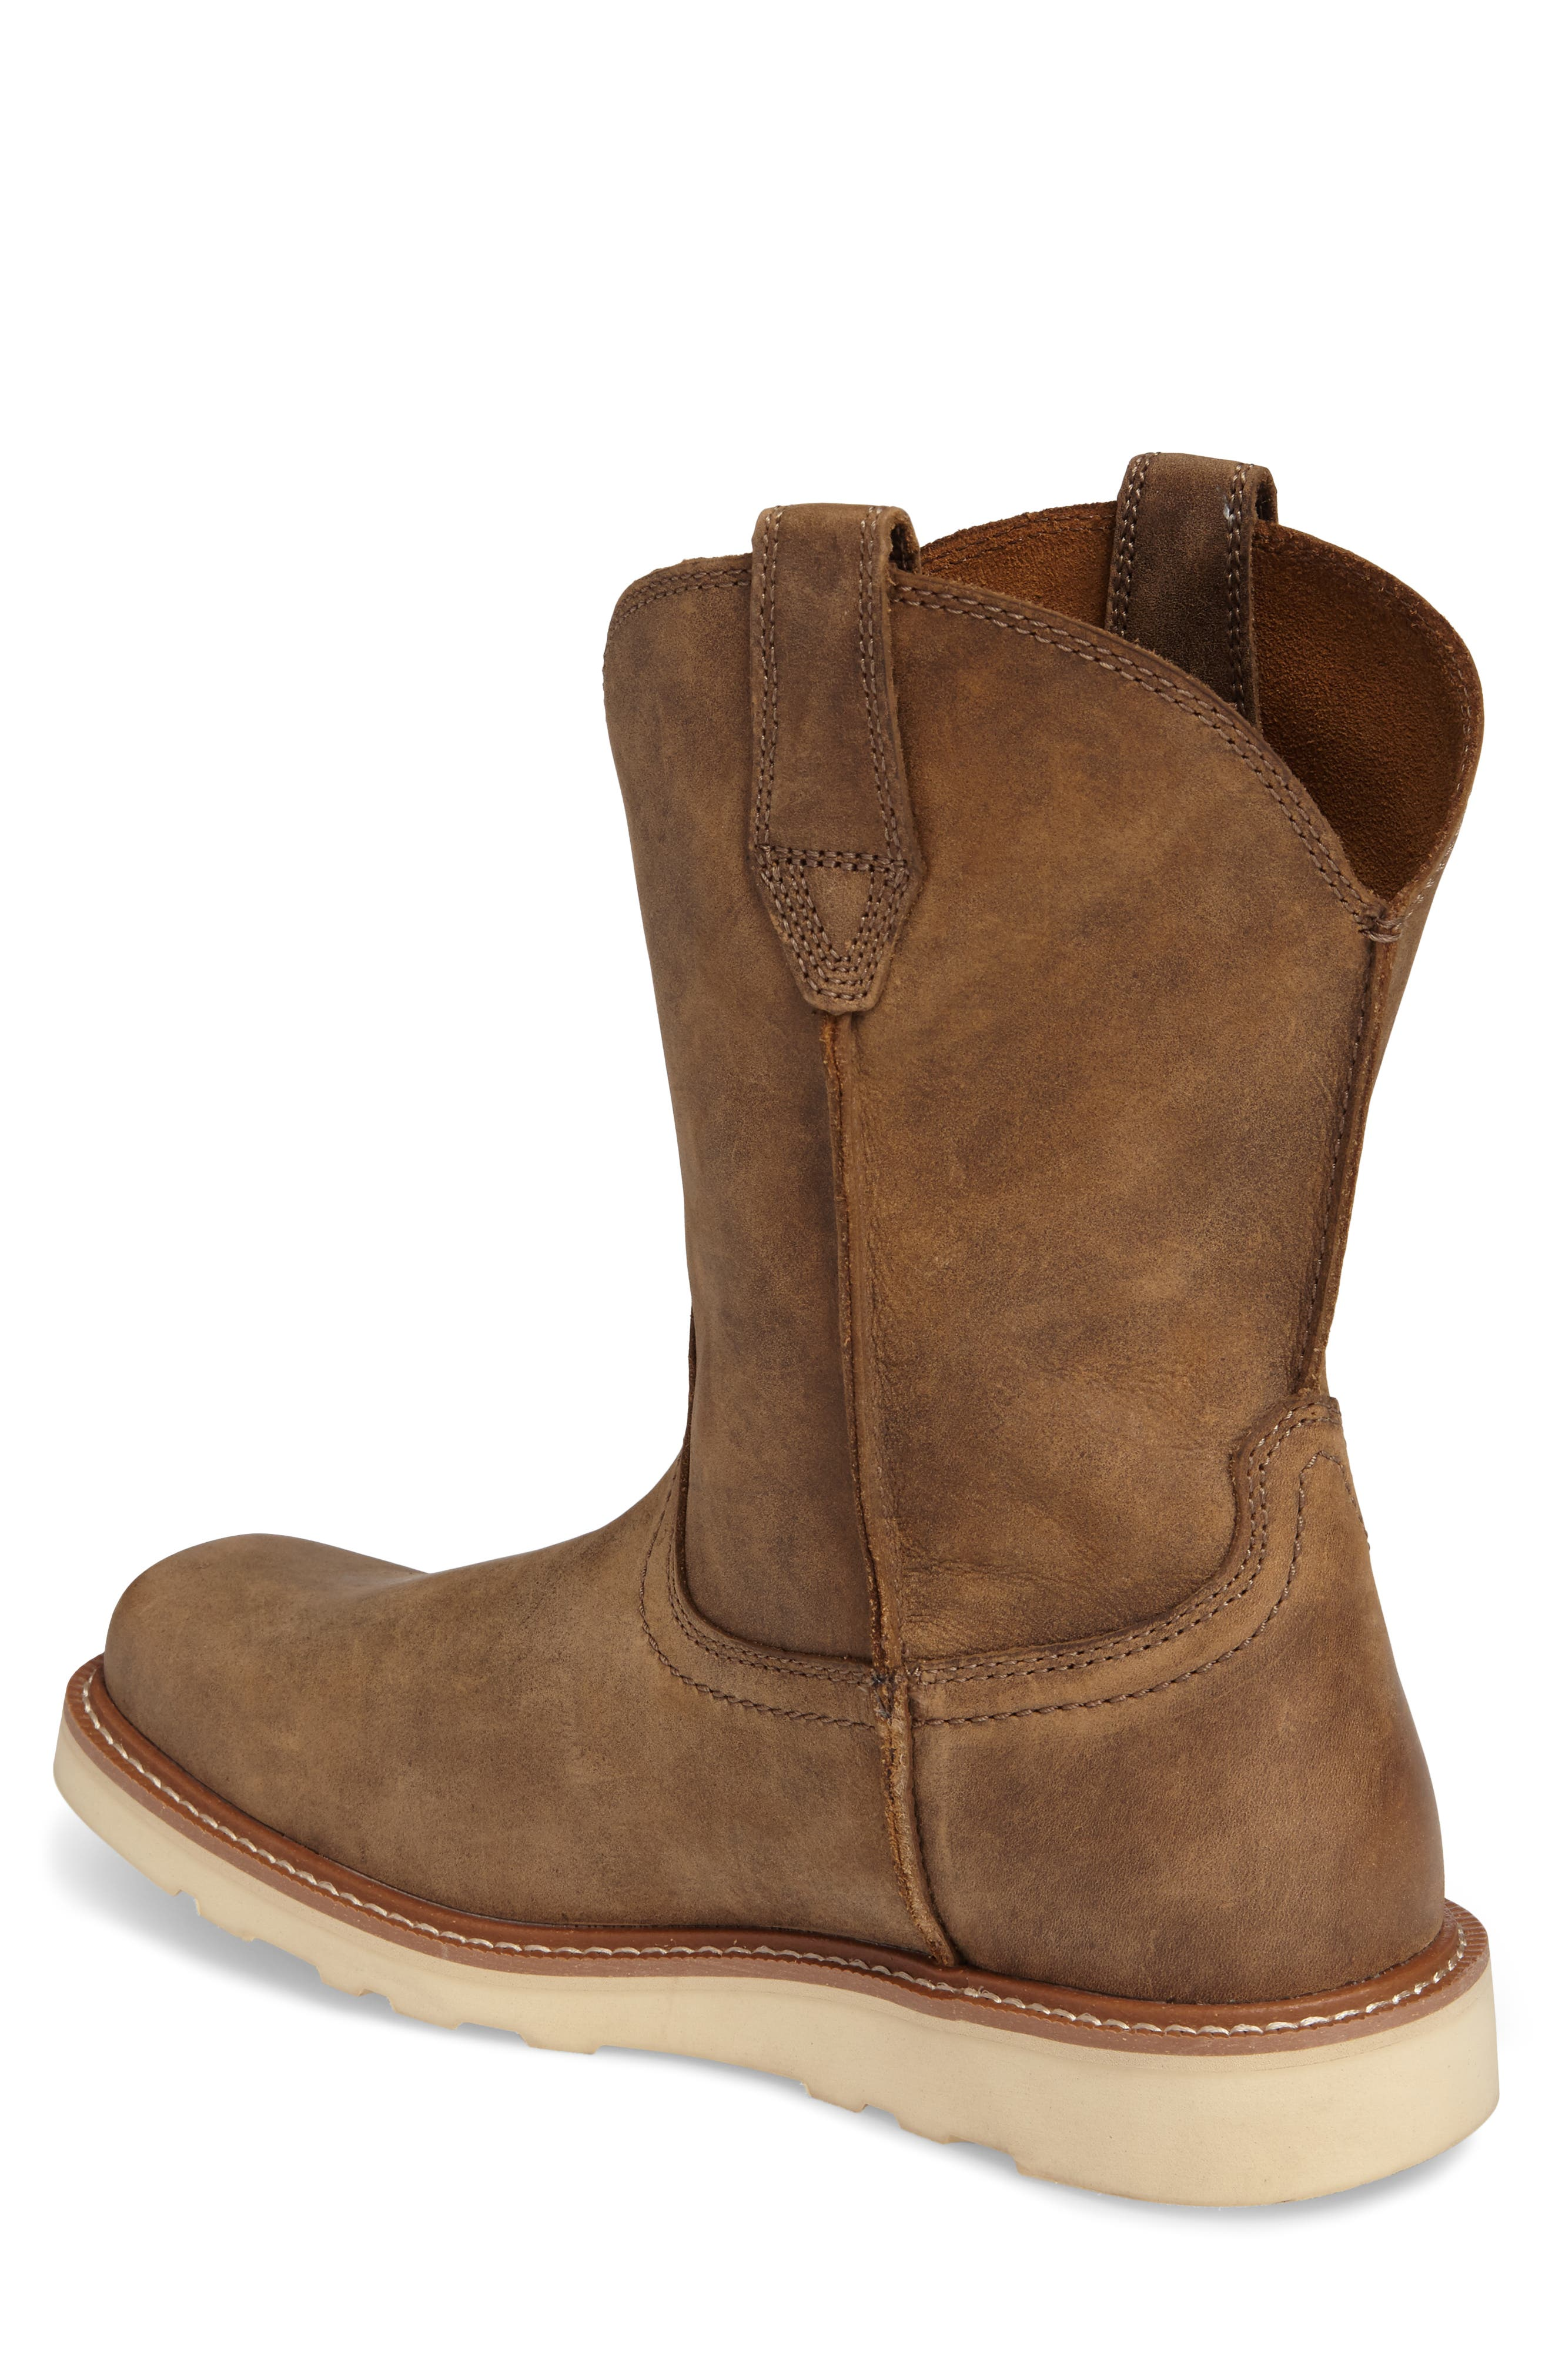 ARIAT, Rambler Tall Boot, Alternate thumbnail 2, color, BROWN BOMBER LEATHER